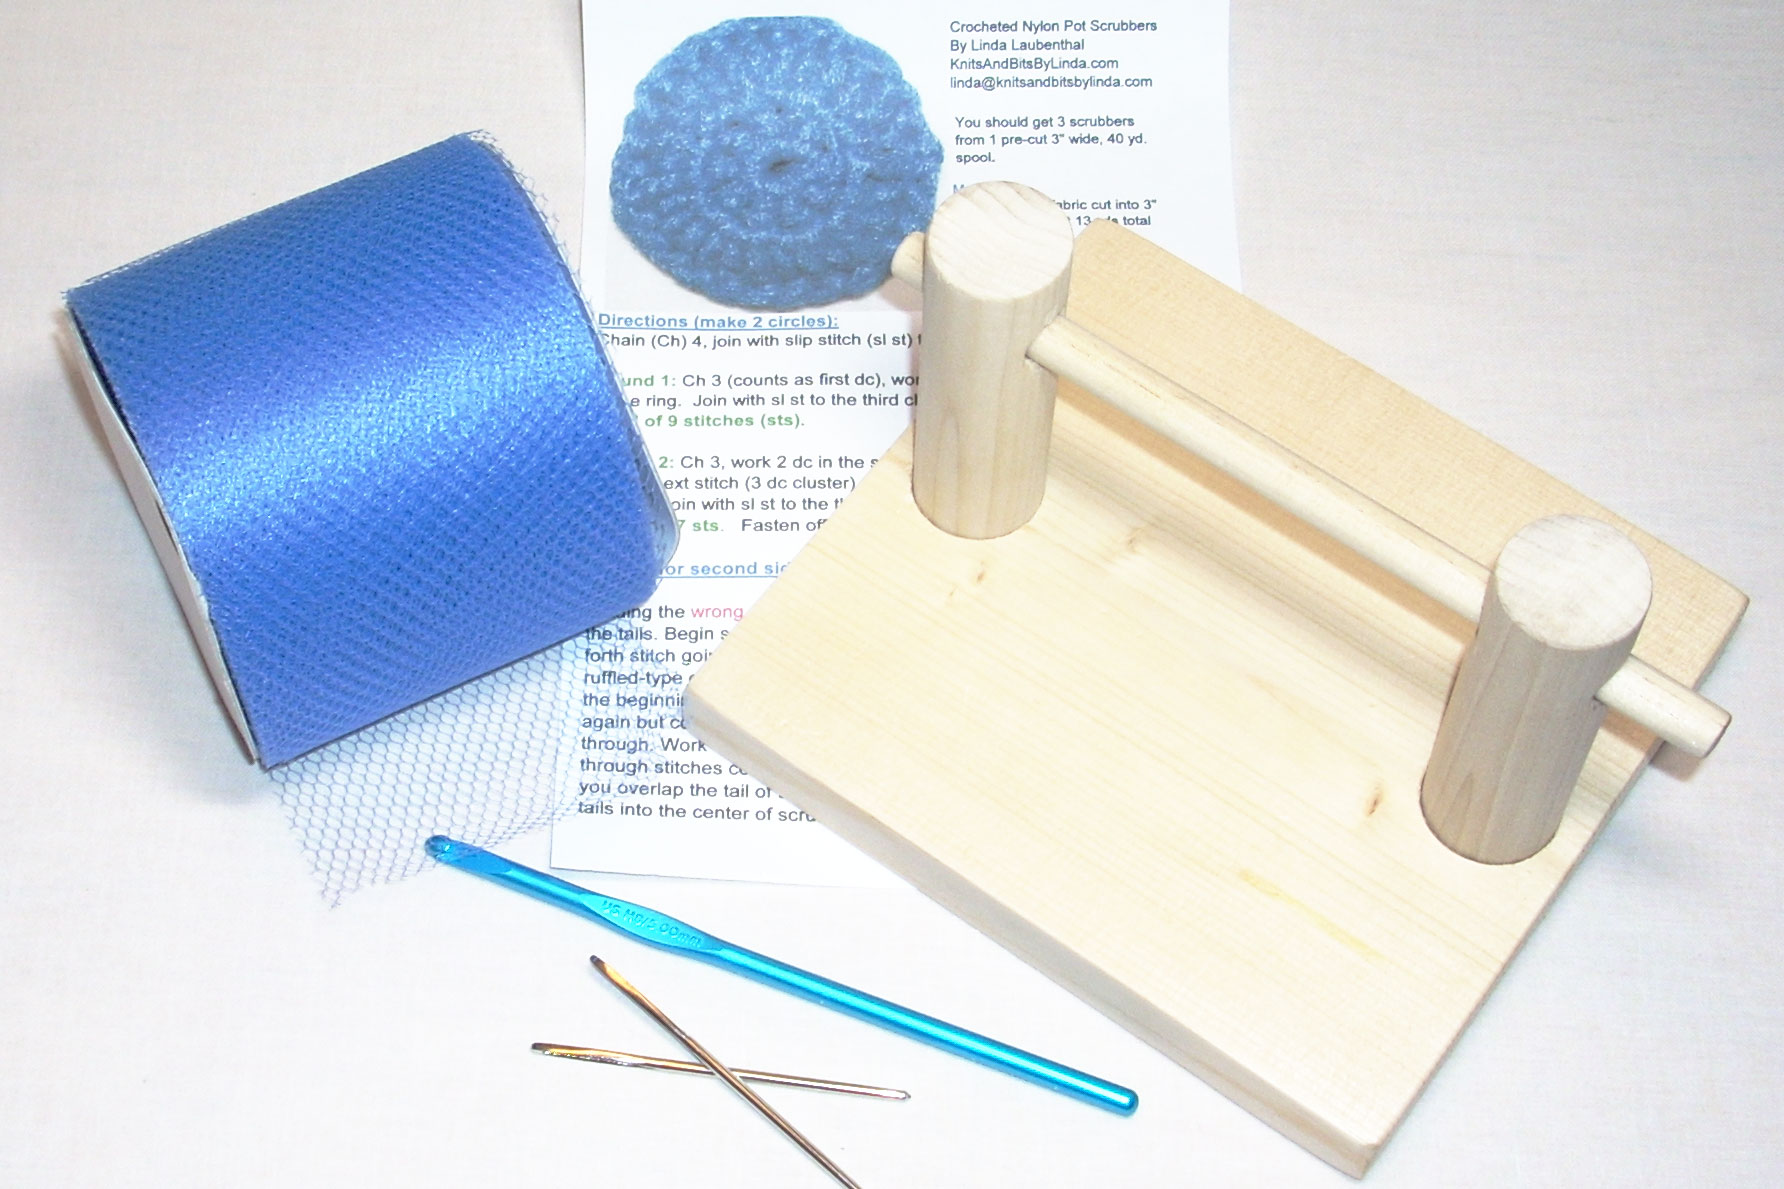 Crochet Pot Scrubber Kit The Tulle Shed